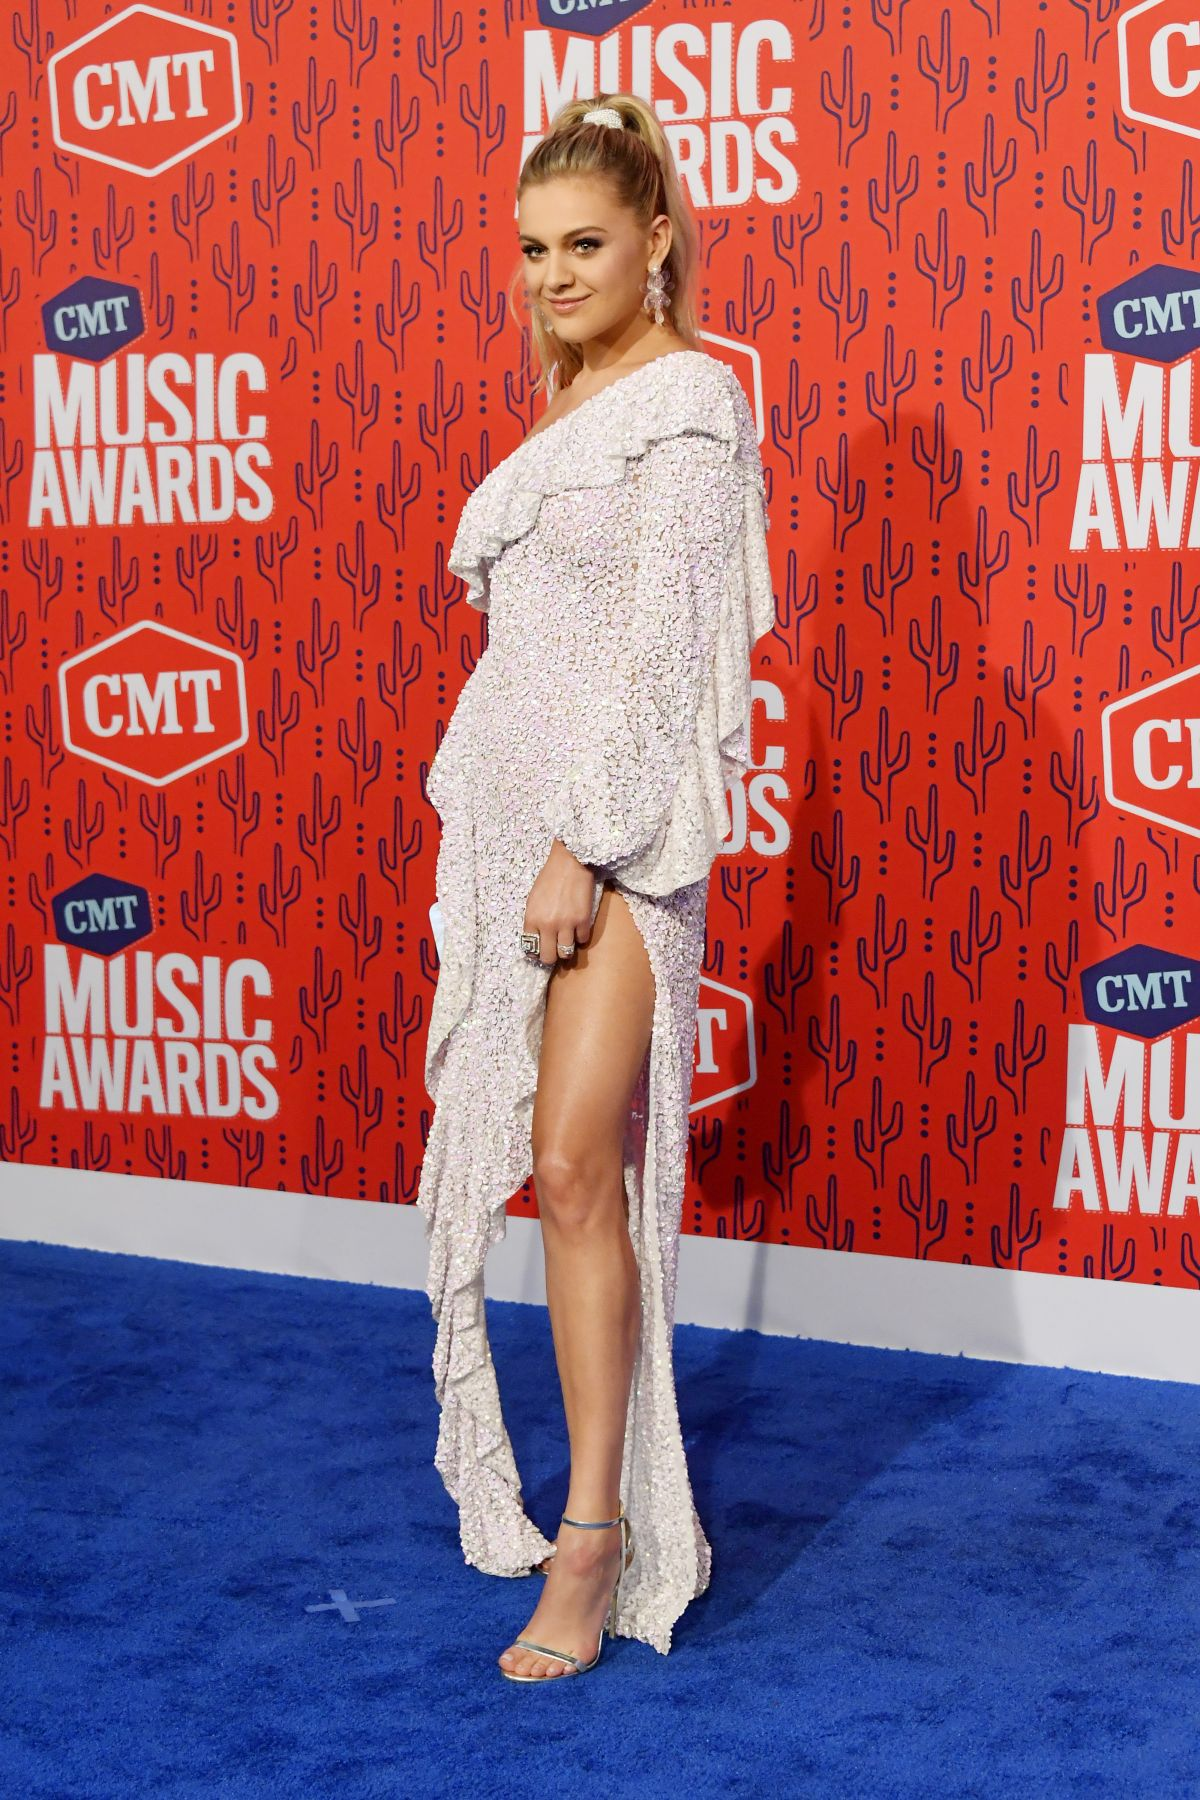 CMT Awards 2020 red carpet: All the best-dressed celebrities